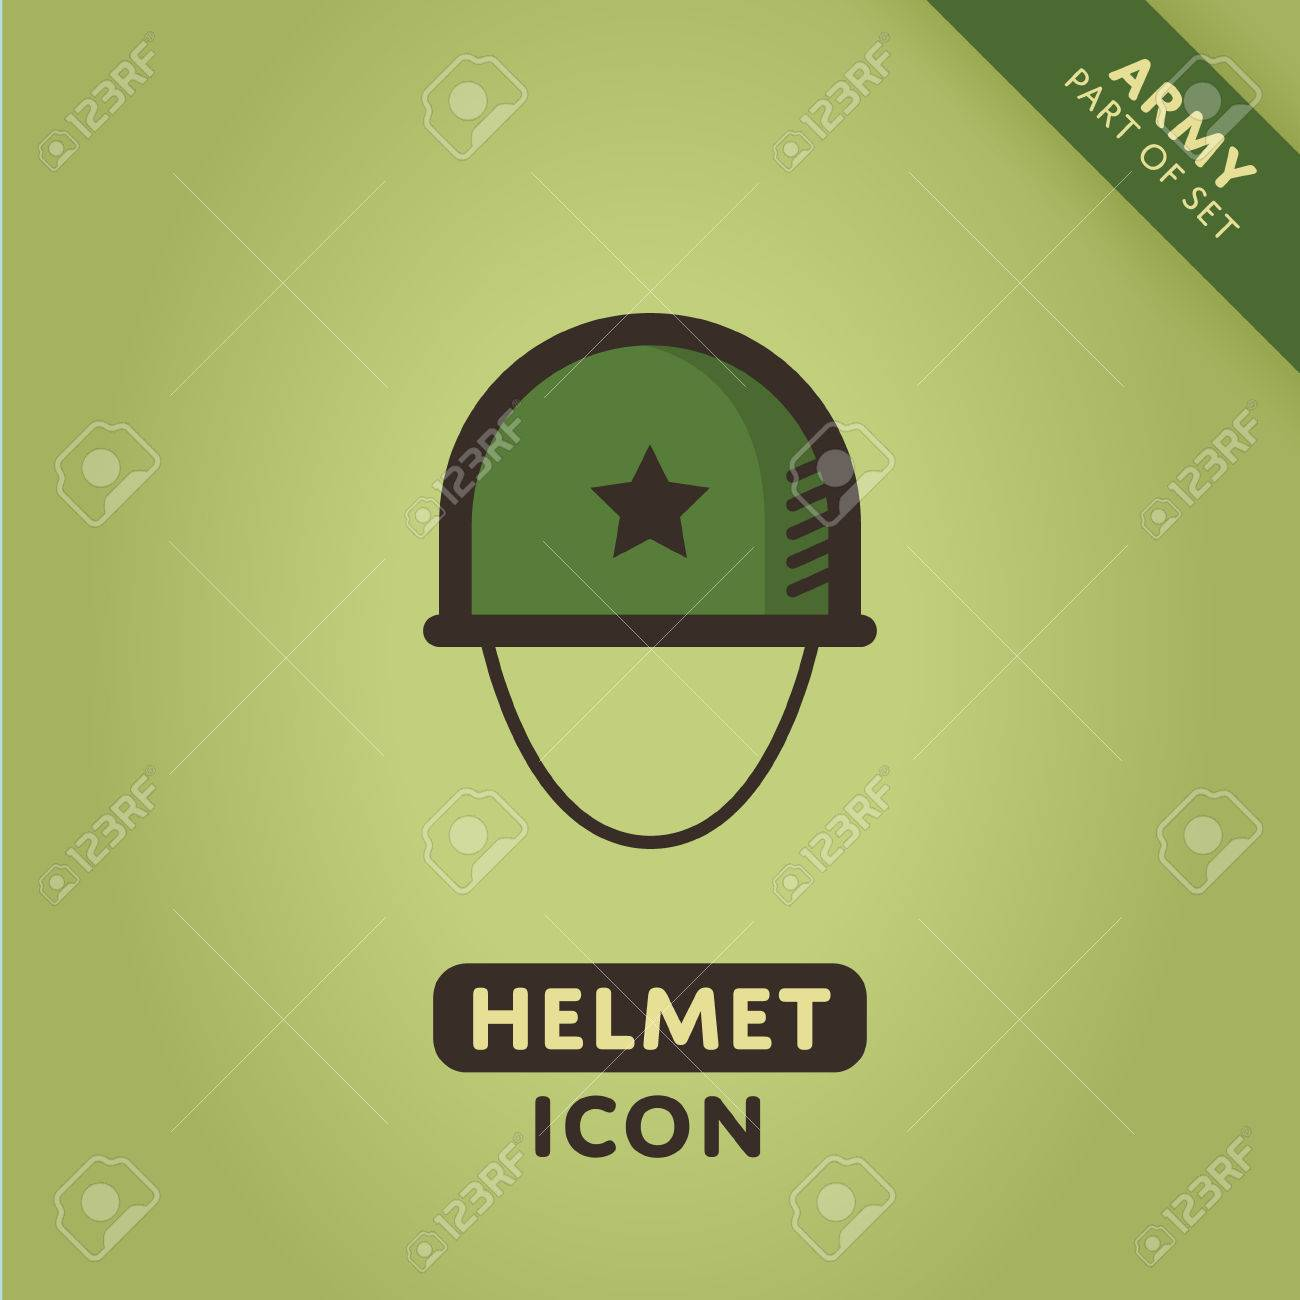 Vector Soldier Helmet Icon Military Sign Army Symbol Royalty Free